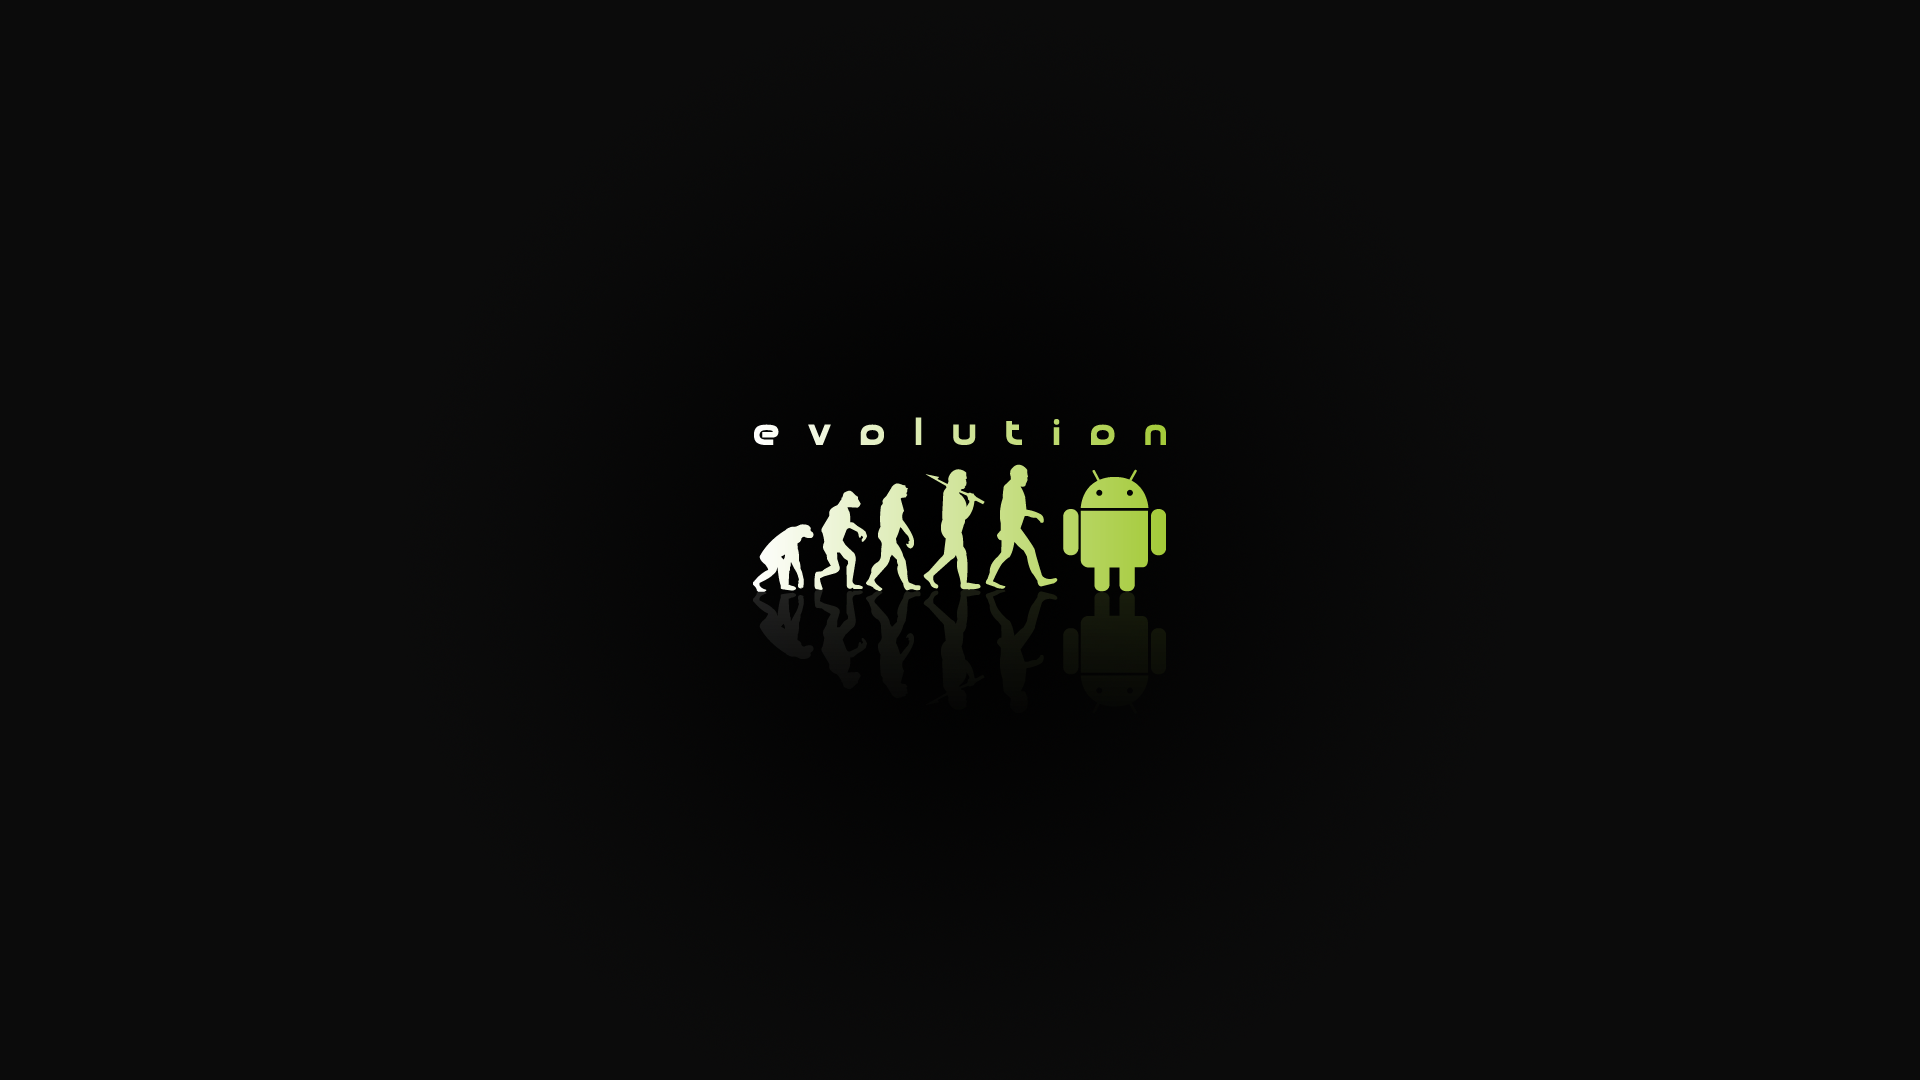 Wallpapers for Evolution – Resolution 1920x1080